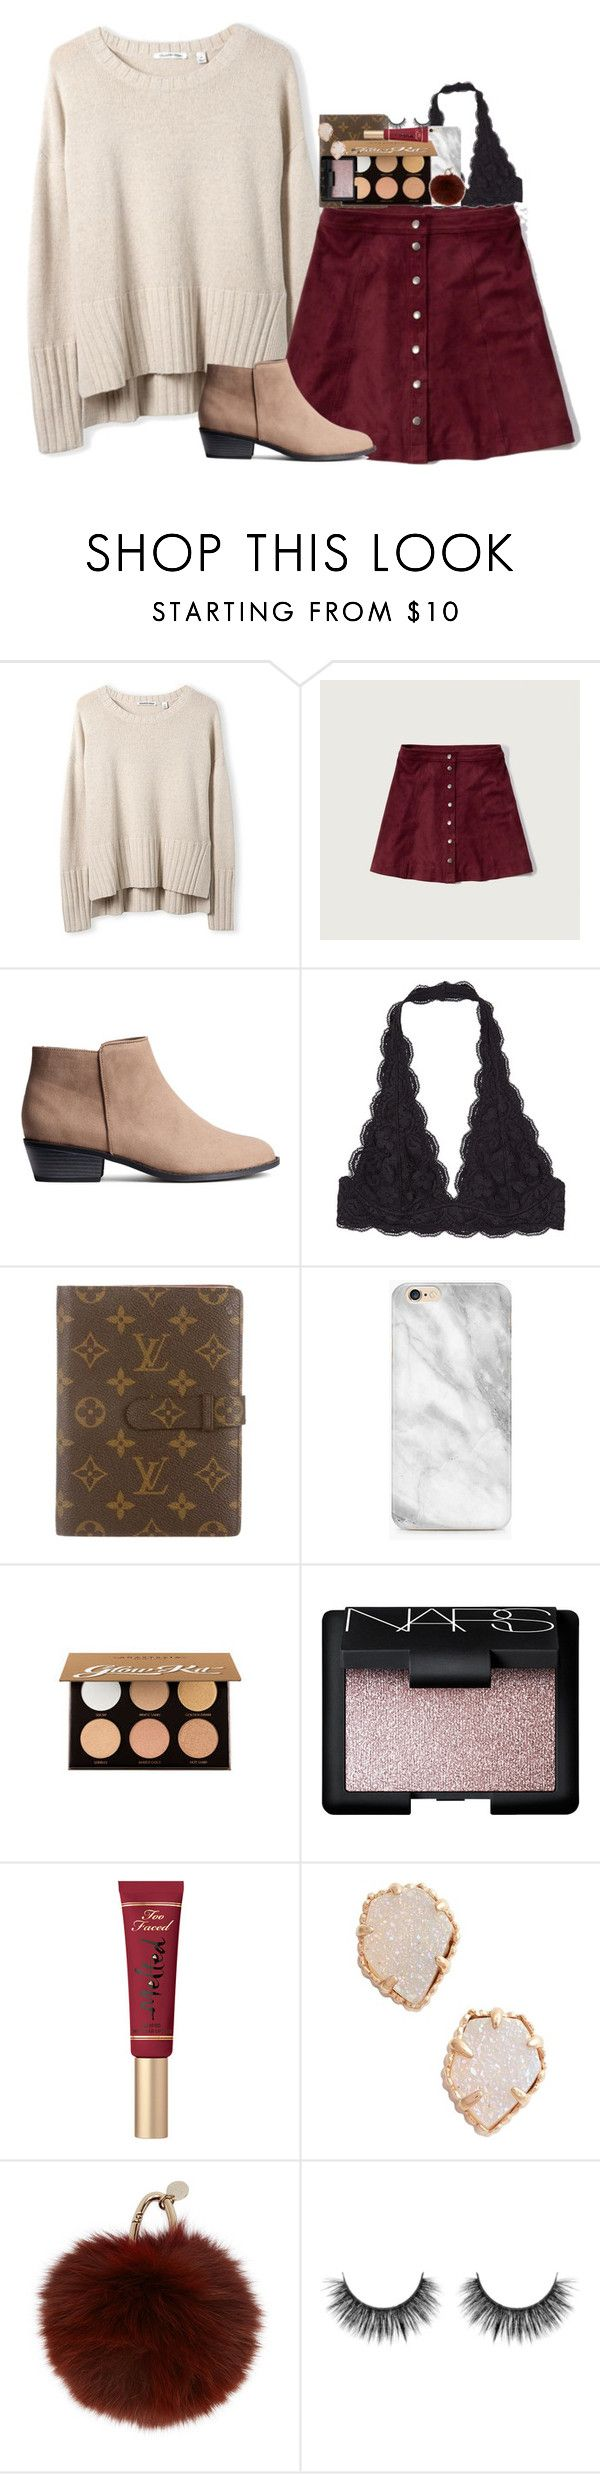 """"" by pineappleprincess1012 ❤ liked on Polyvore featuring Abercrombie & Fitch, Louis Vuitton, Anastasia Beverly Hills, NARS Cosmetics, Too Faced Cosmetics, Kendra Scott and Yves Salomon"